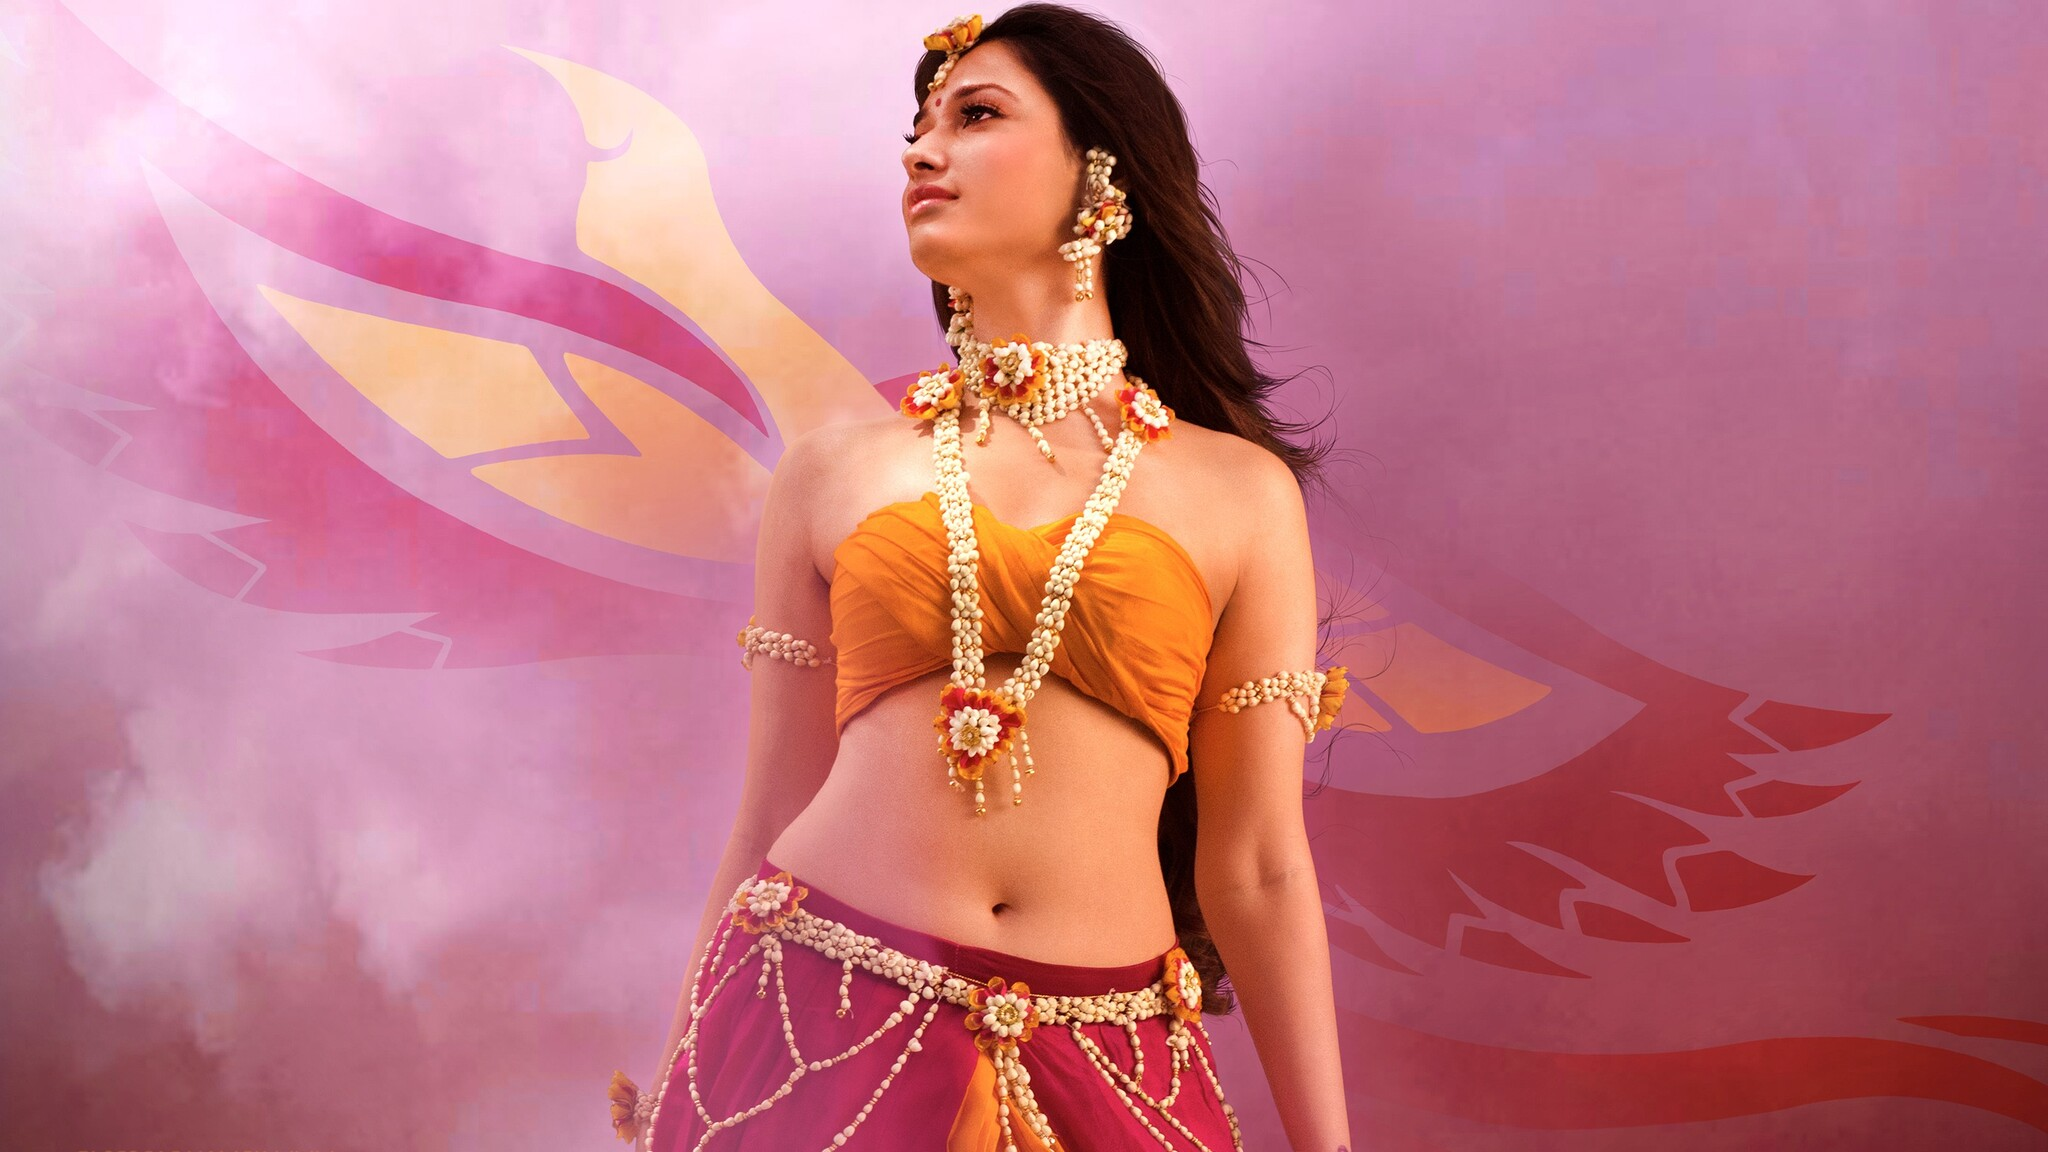 2048x1152 tamanna in bahubali 2048x1152 resolution hd 4k wallpapers